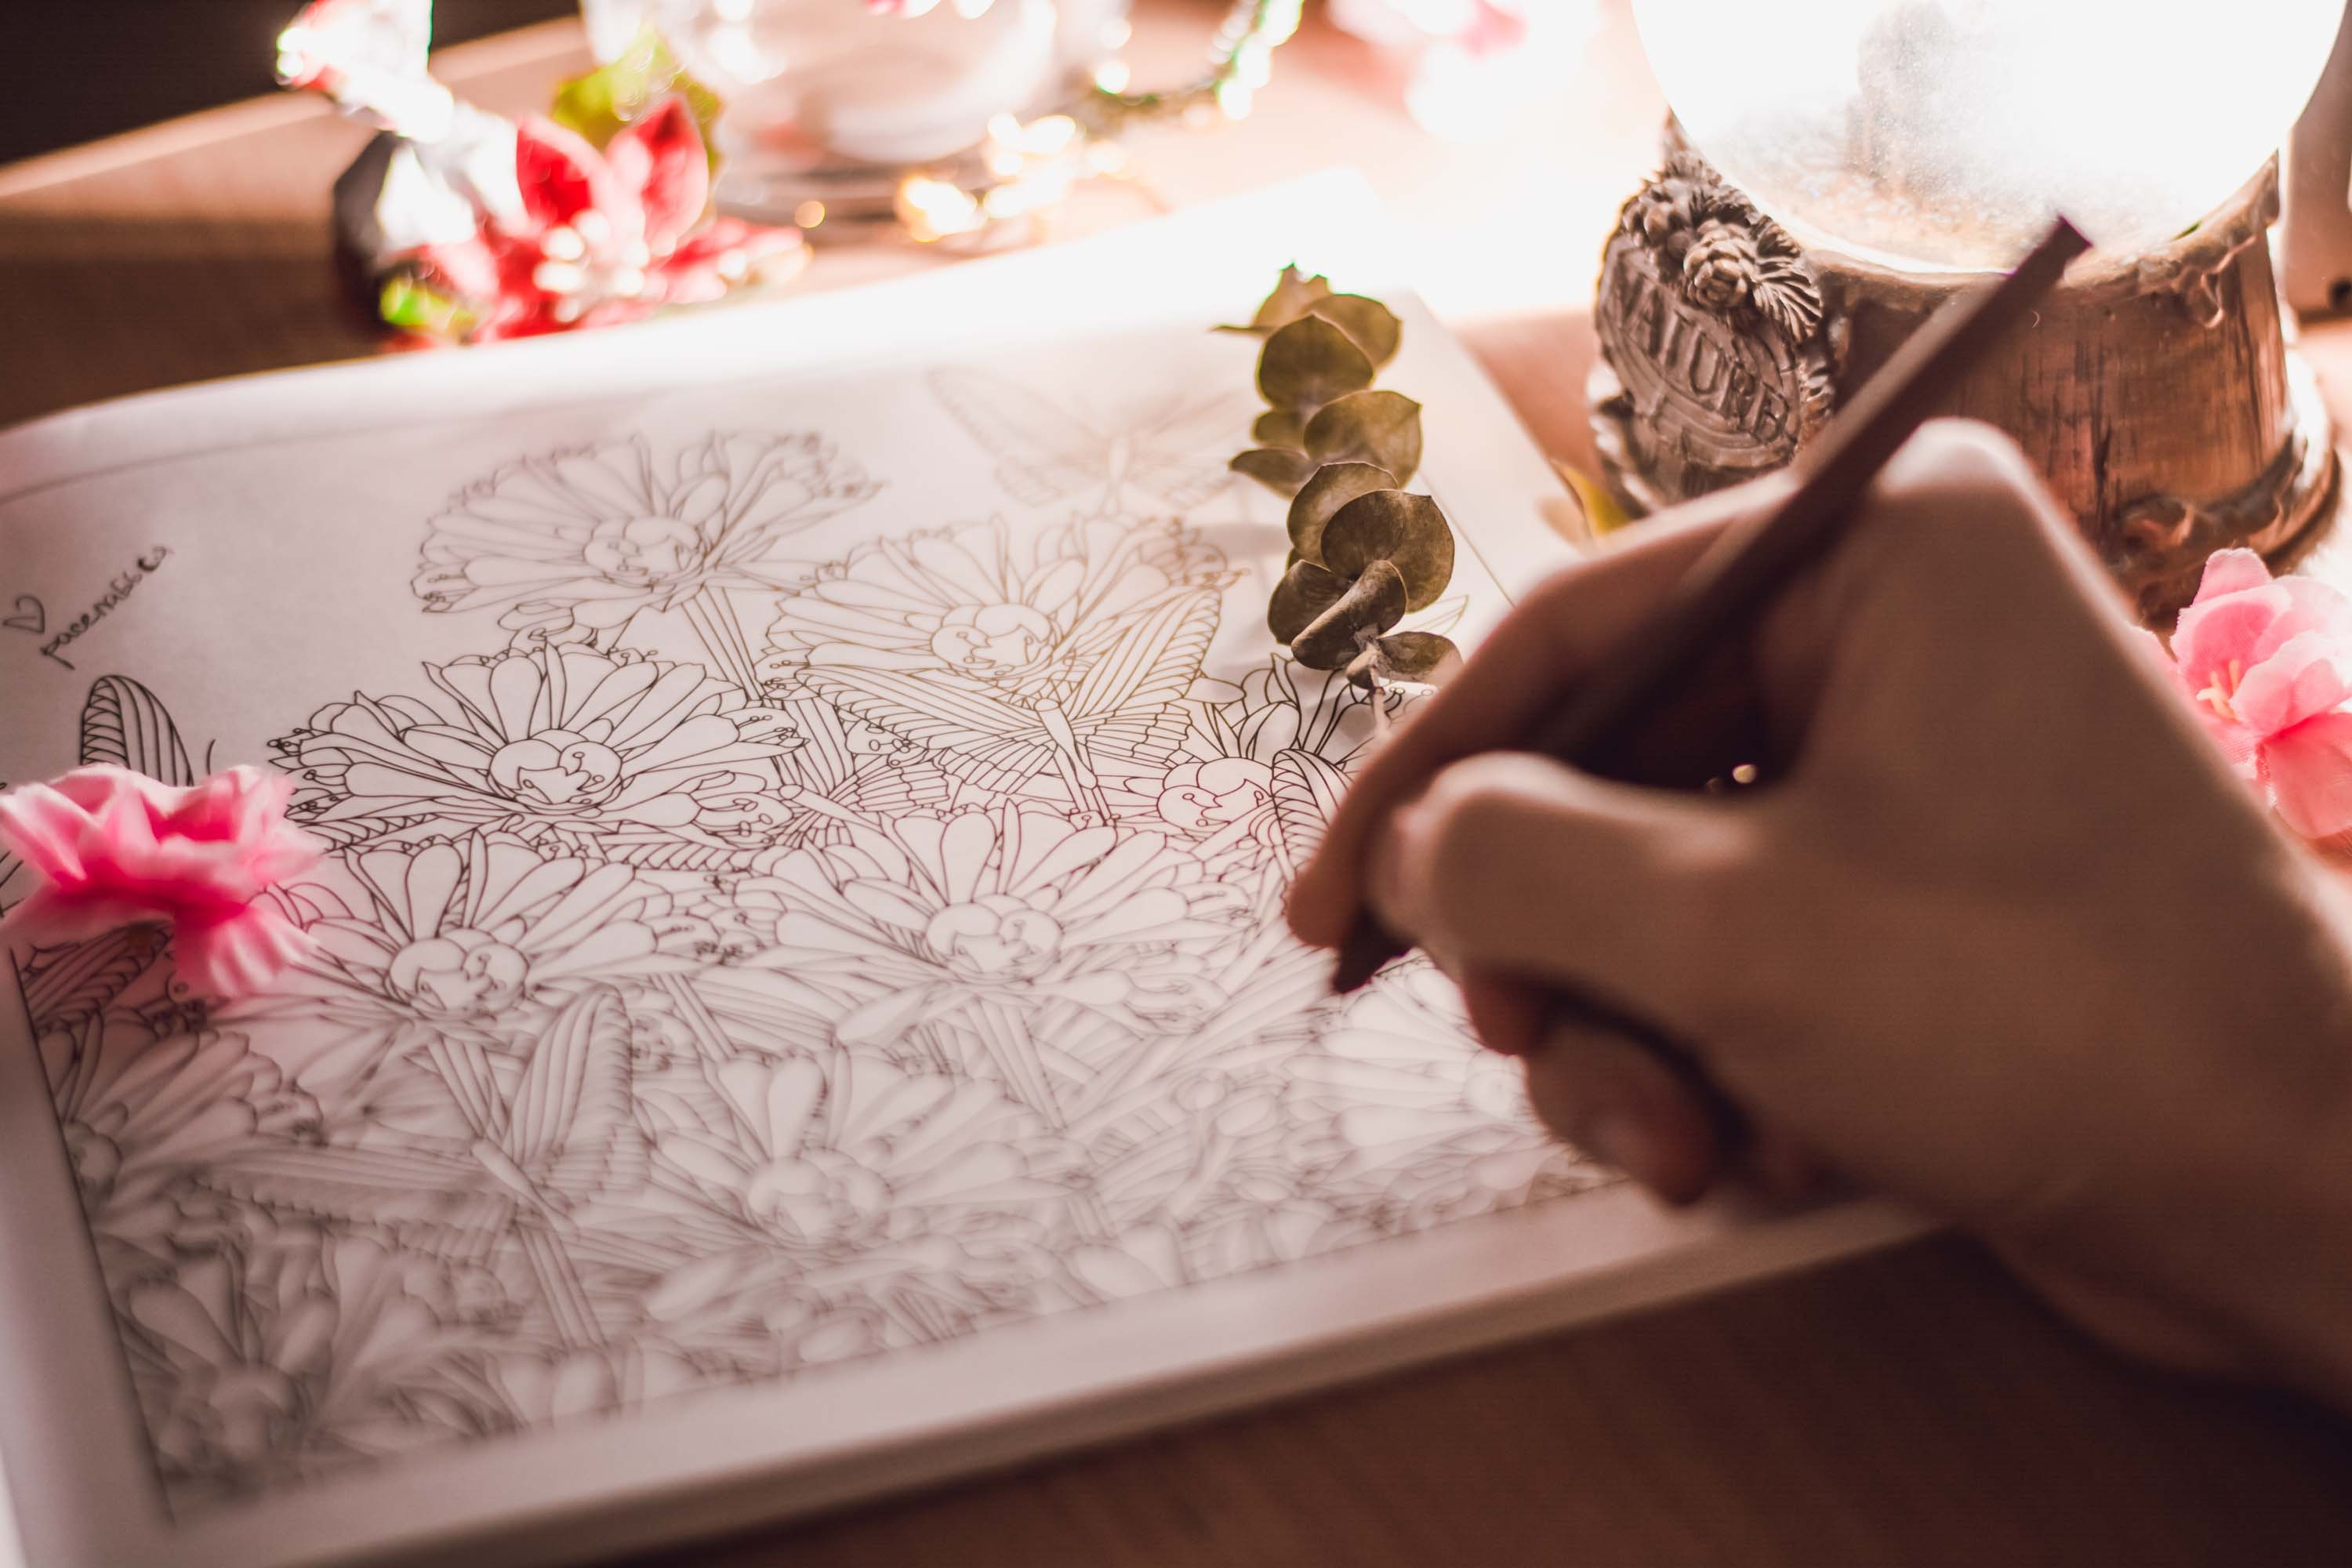 adult colouring a colouring book